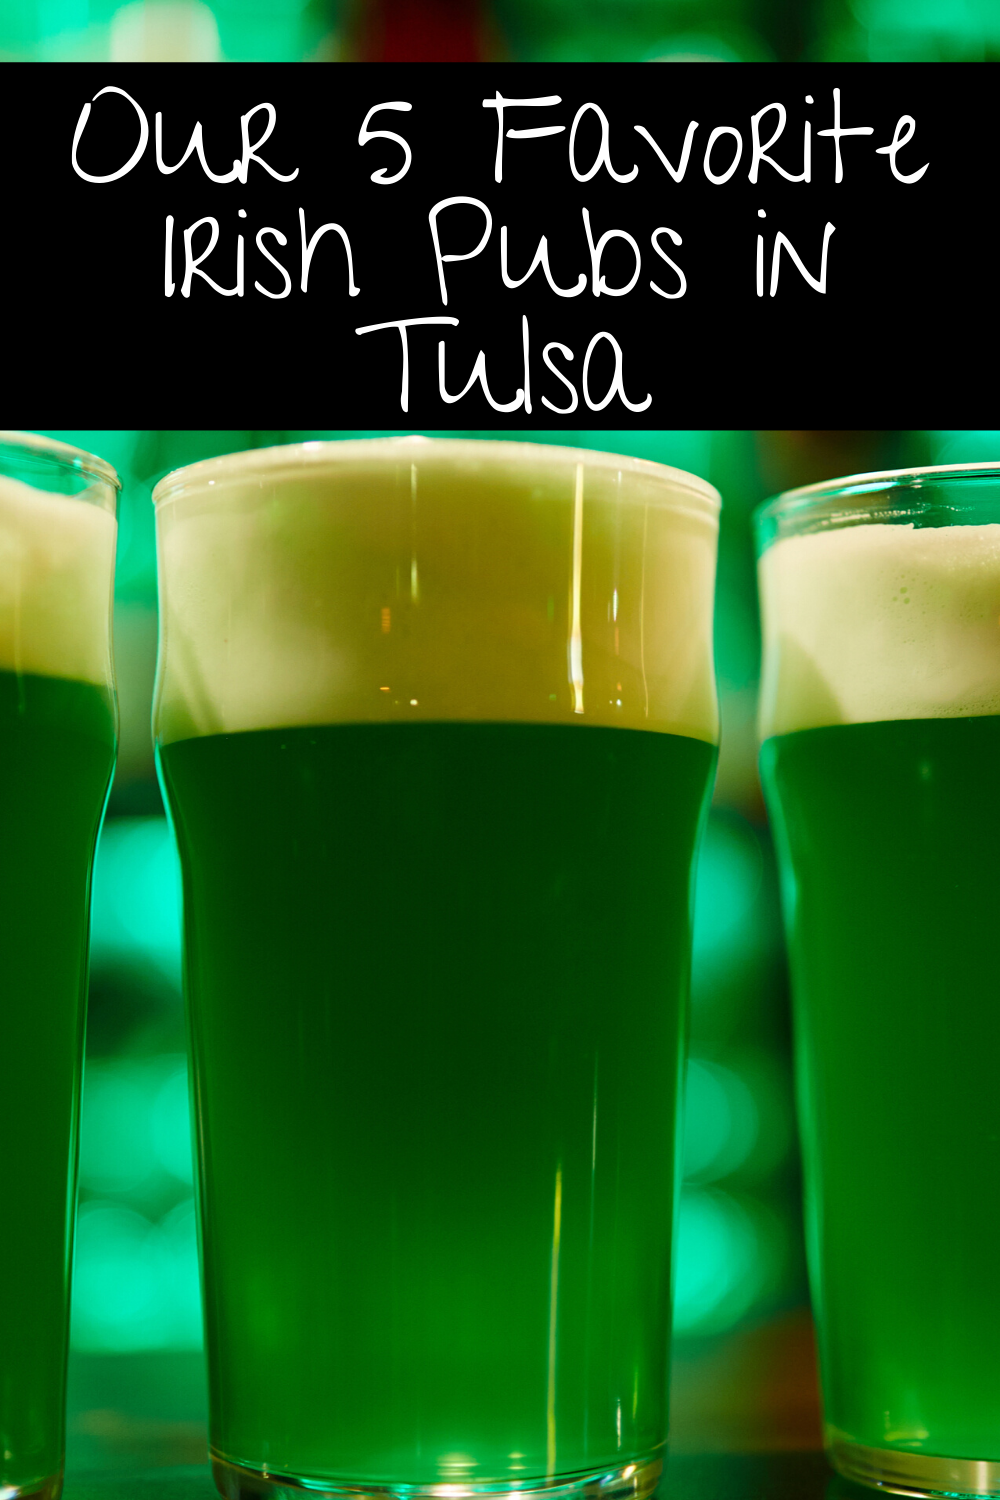 Let's dive in and take a look at some of the Irish pubs in Tulsa. When it comes time for St. Patrick's day in Tulsa here is where you should start!